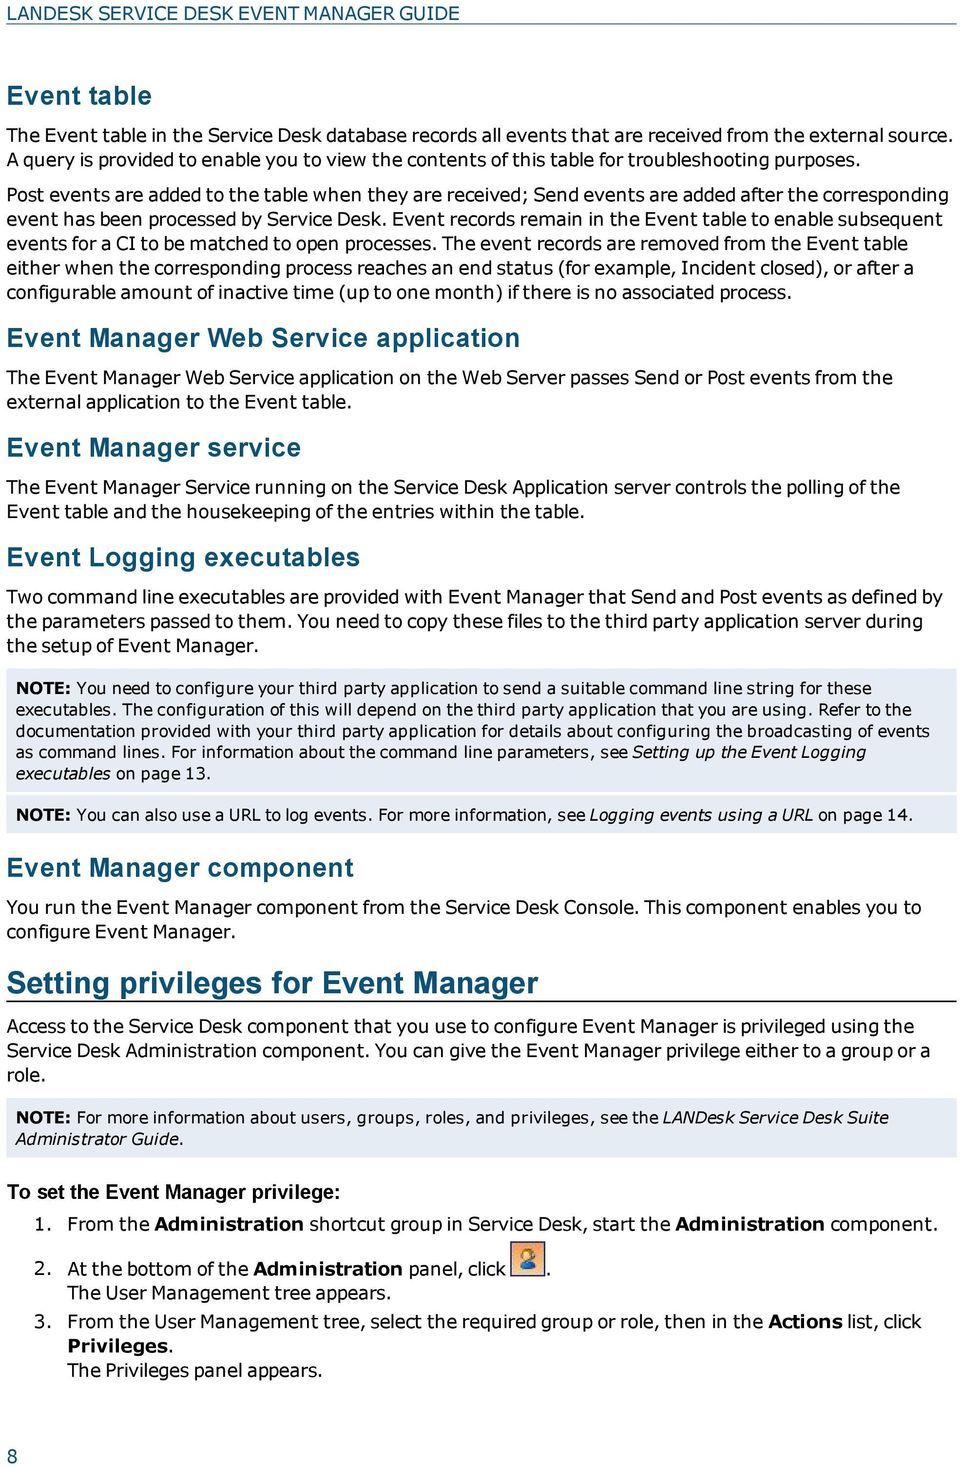 Post events are added to the table when they are received; Send events are added after the corresponding event has been processed by Service Desk.